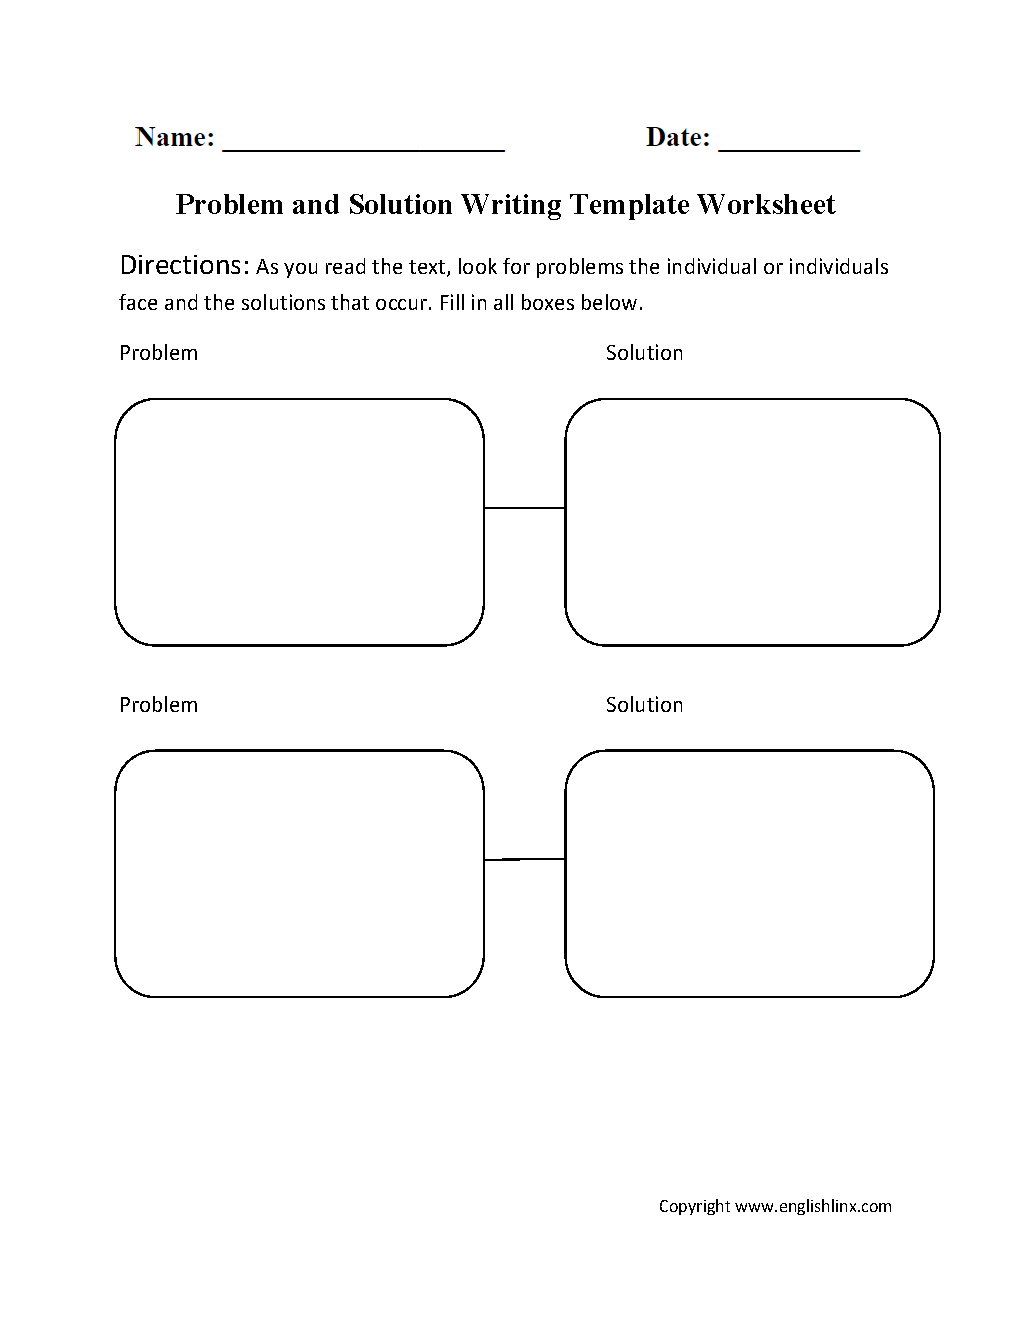 Printables Problem And Solution Worksheets writing template worksheets problem and solution worksheet